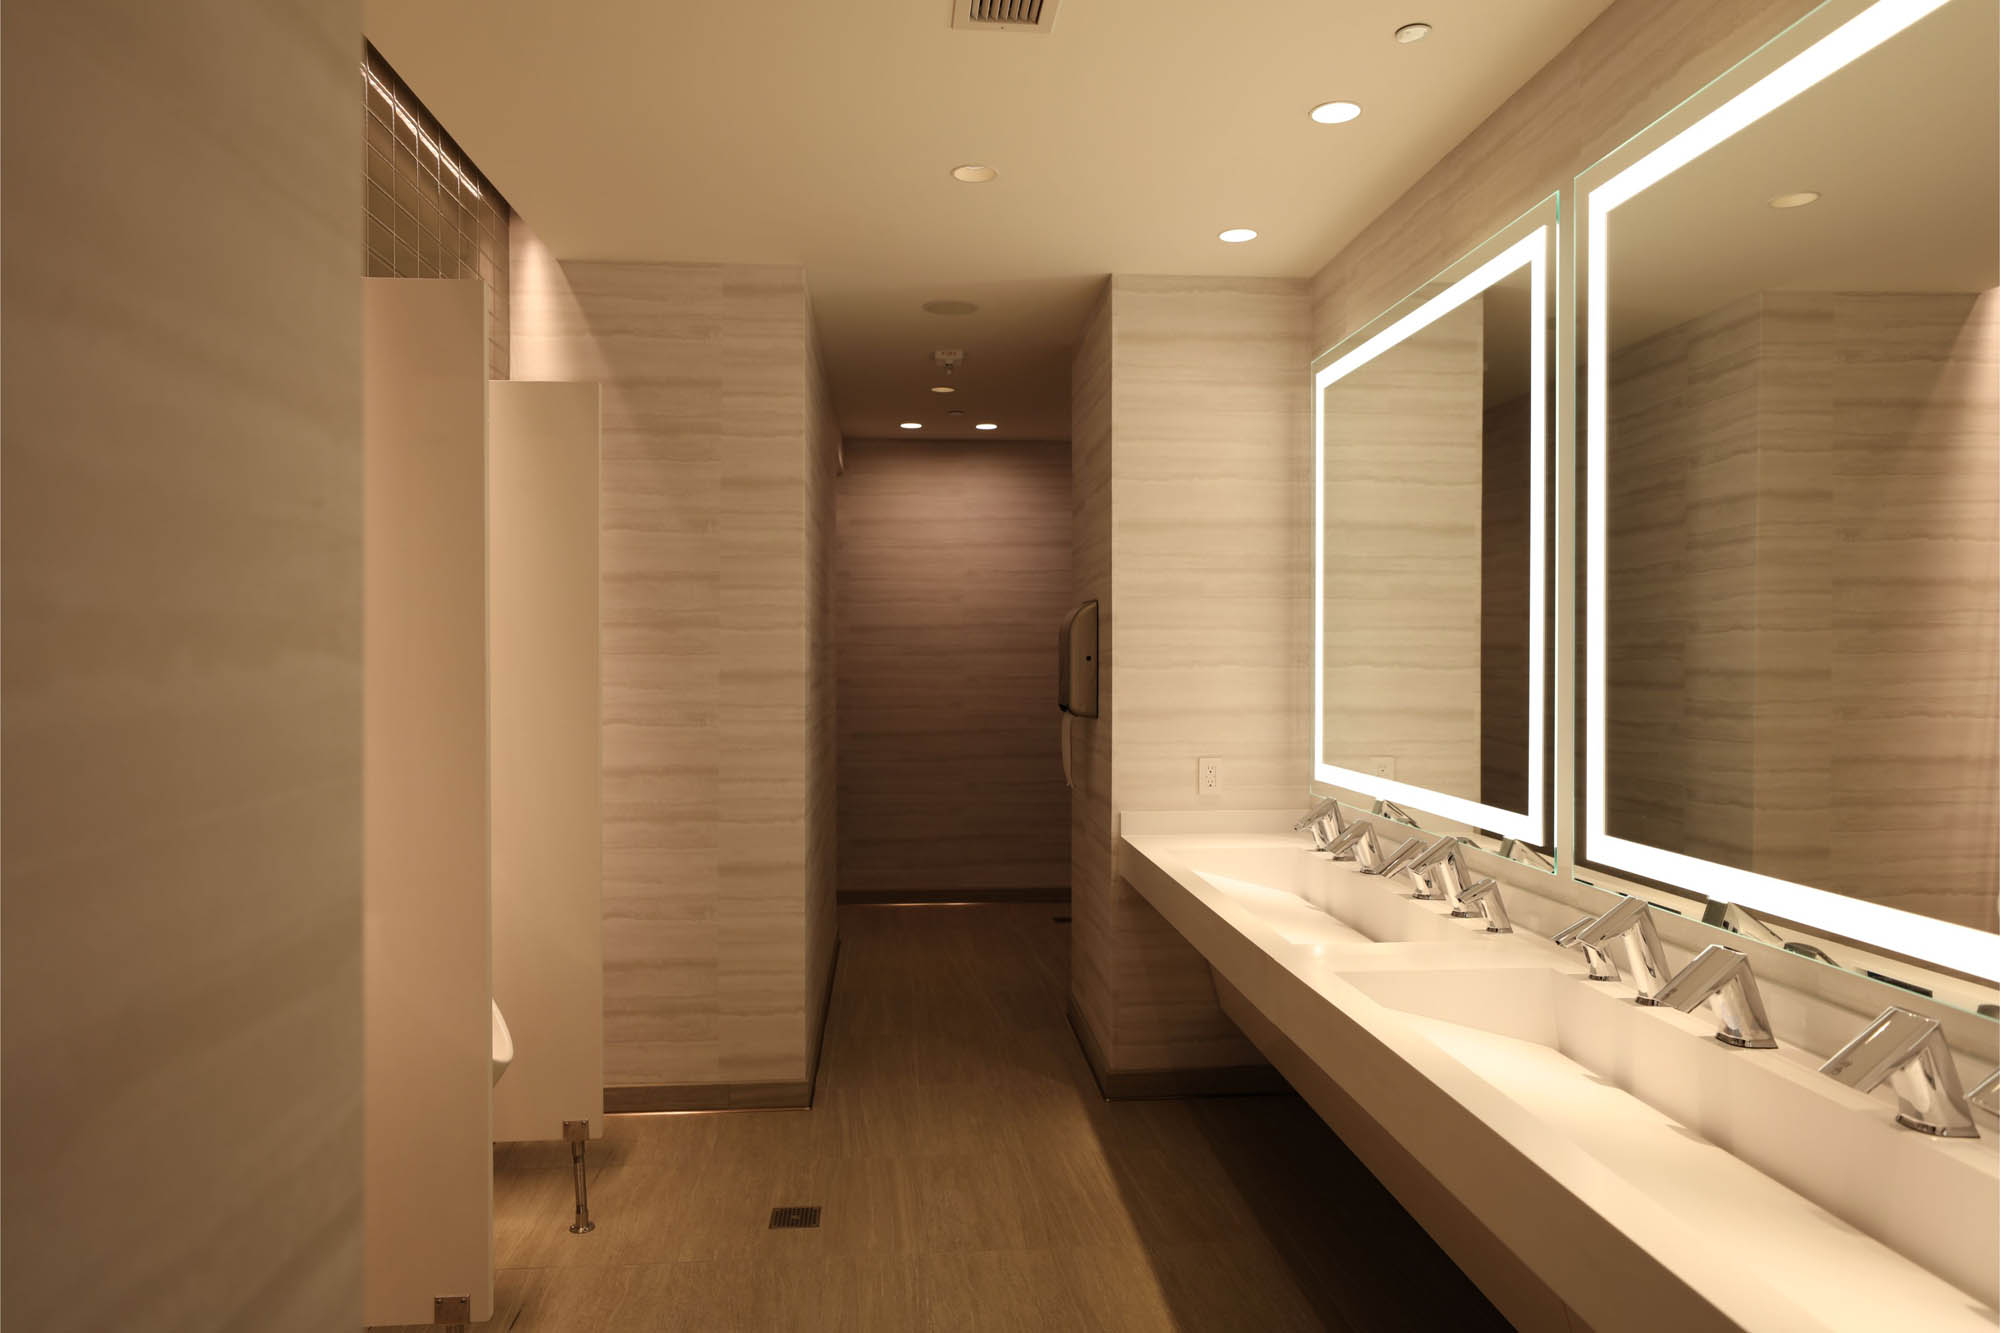 Linear LED strip lights illuminating the edges of large mirrors in the vanity area of a modern hotel public restroom. Boca Flasher